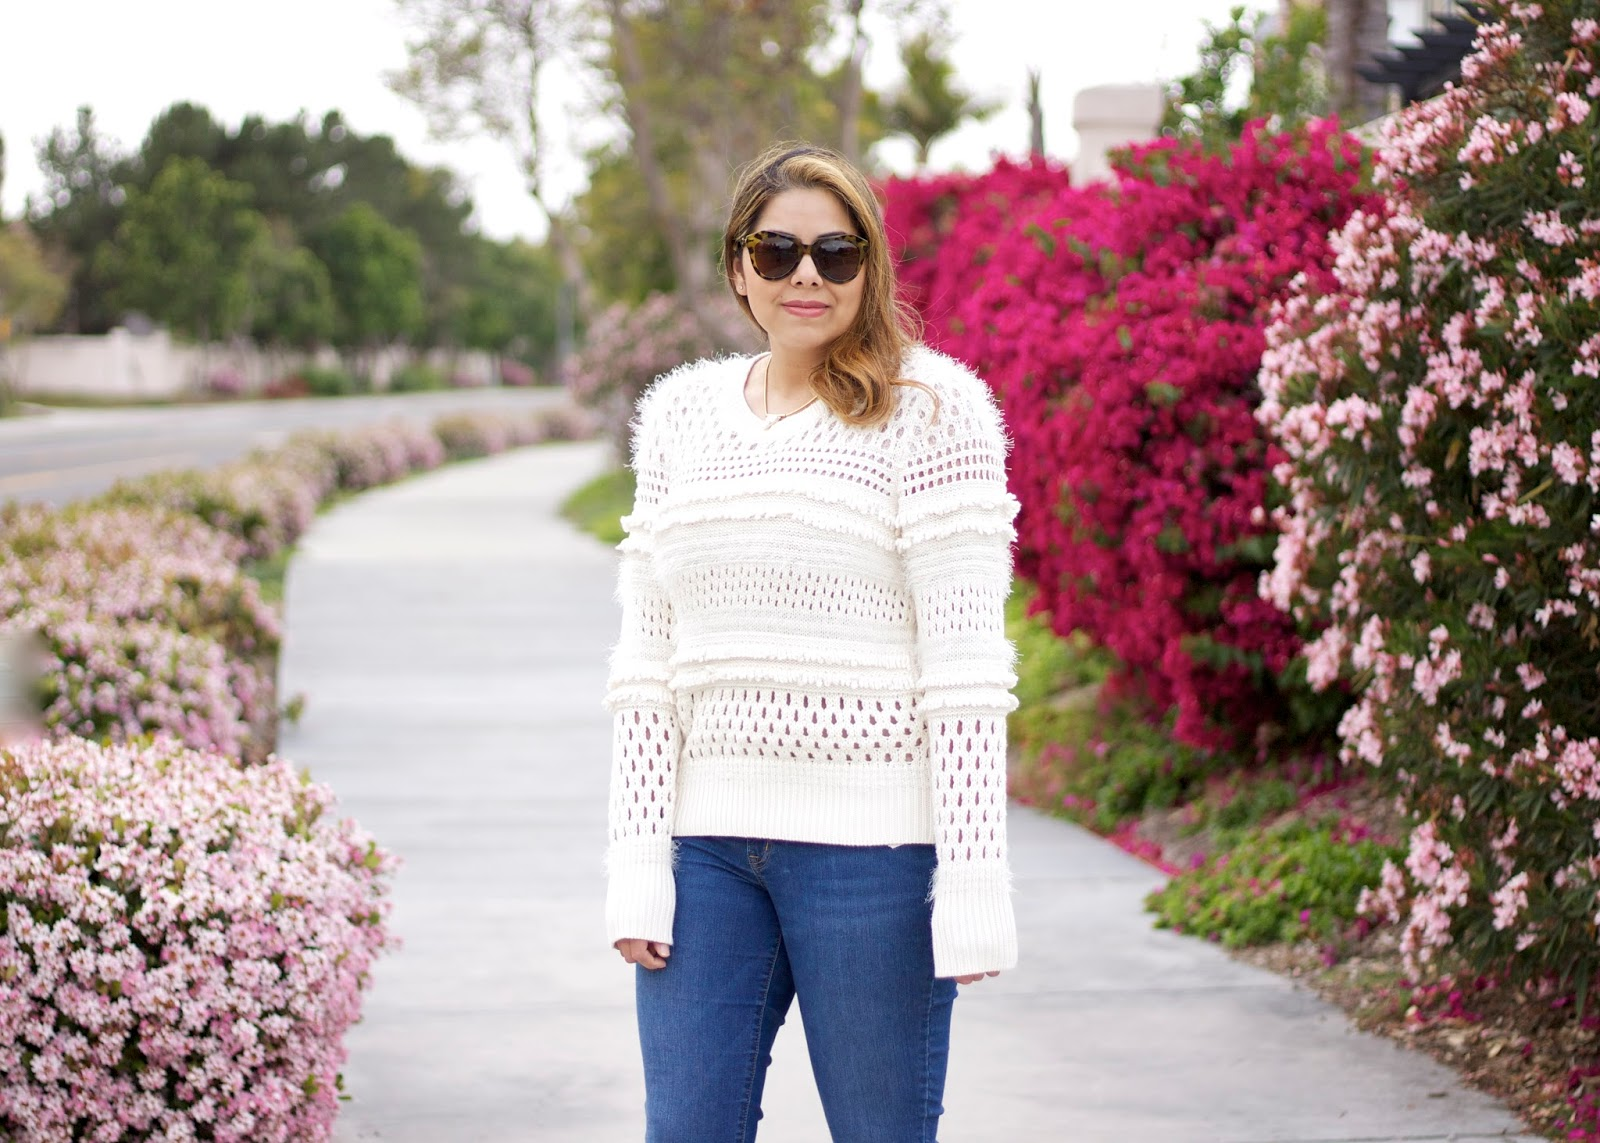 Banana Republic Blogger, #itsbanana blogger, mexican fashion blogger, cold weather Spring Outfit, casual jean outfit, sweater and jeans